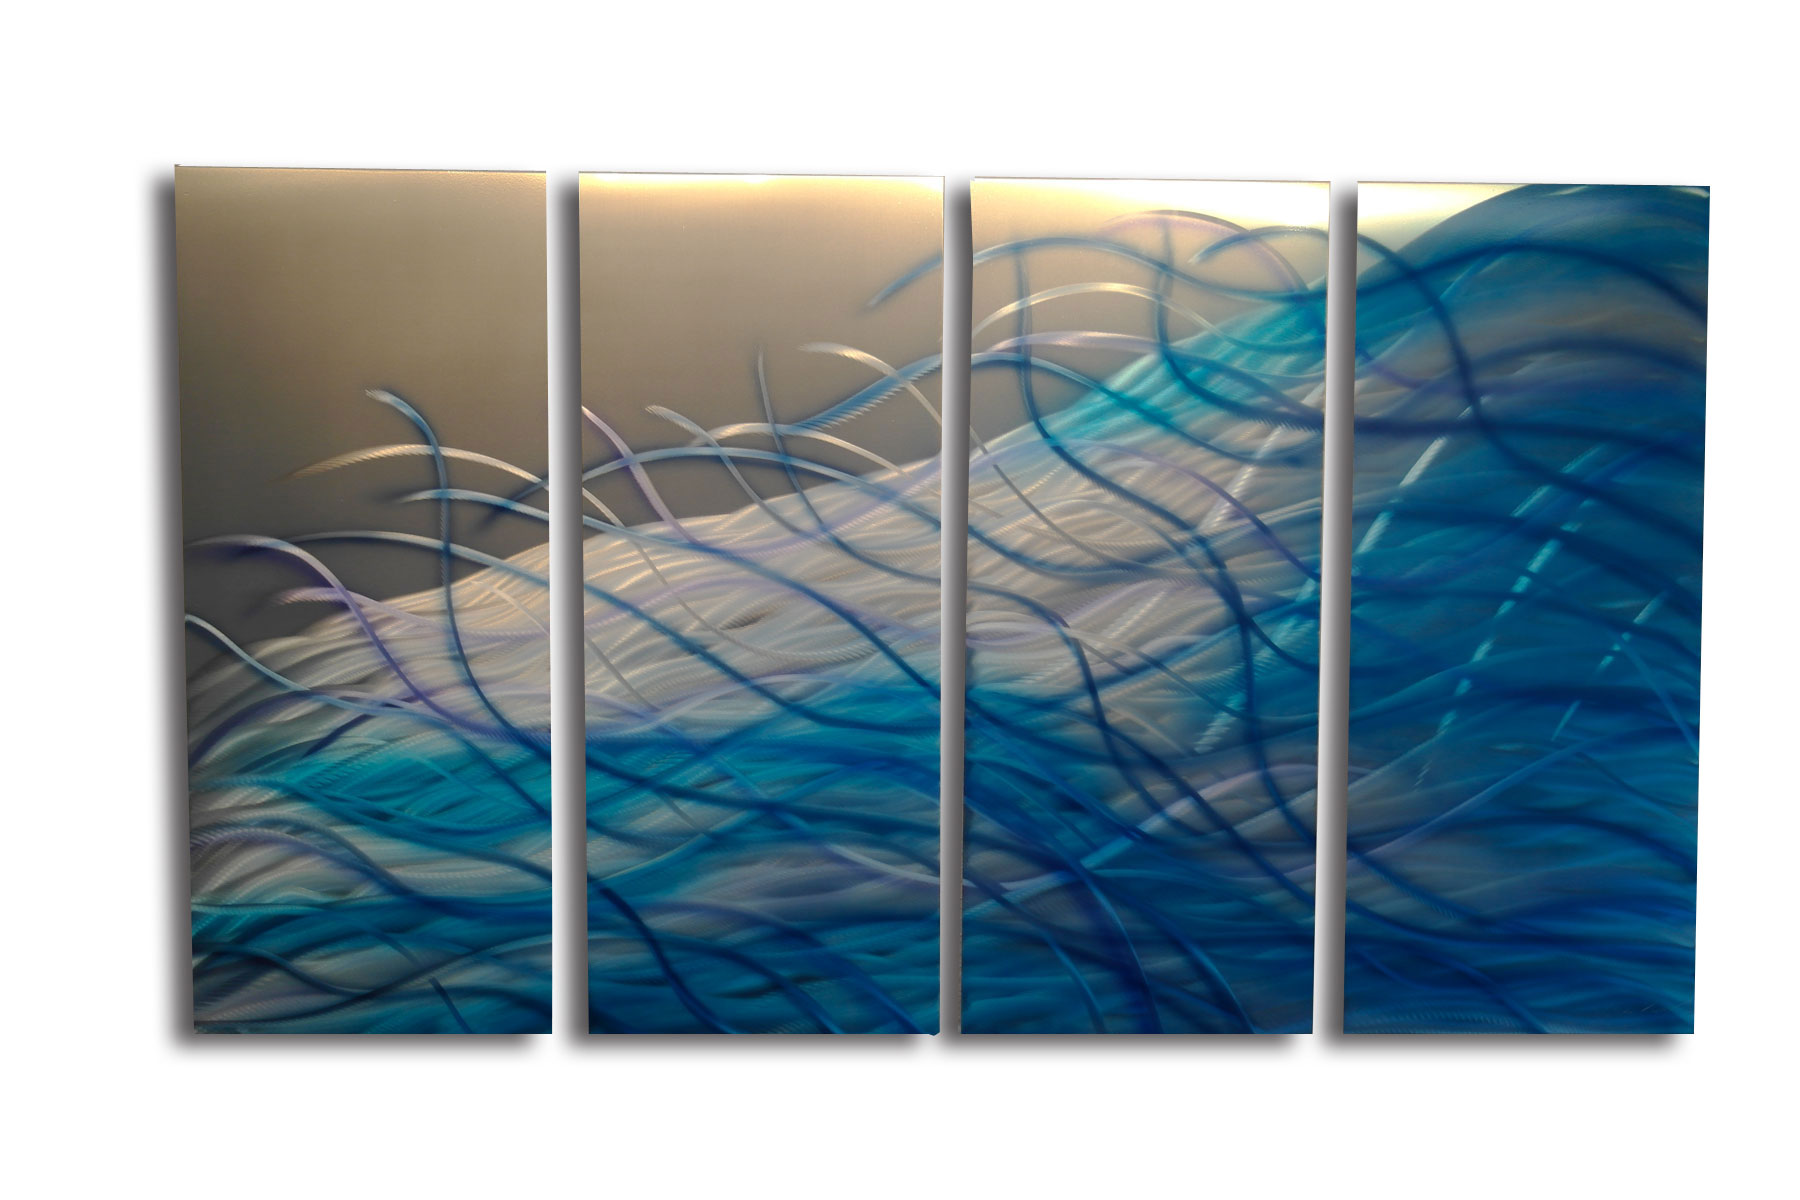 Blue Metal Wall Decor Mesmerizing Resonance Blue 36  Abstract Metal Wall Art Contemporary Modern Inspiration Design